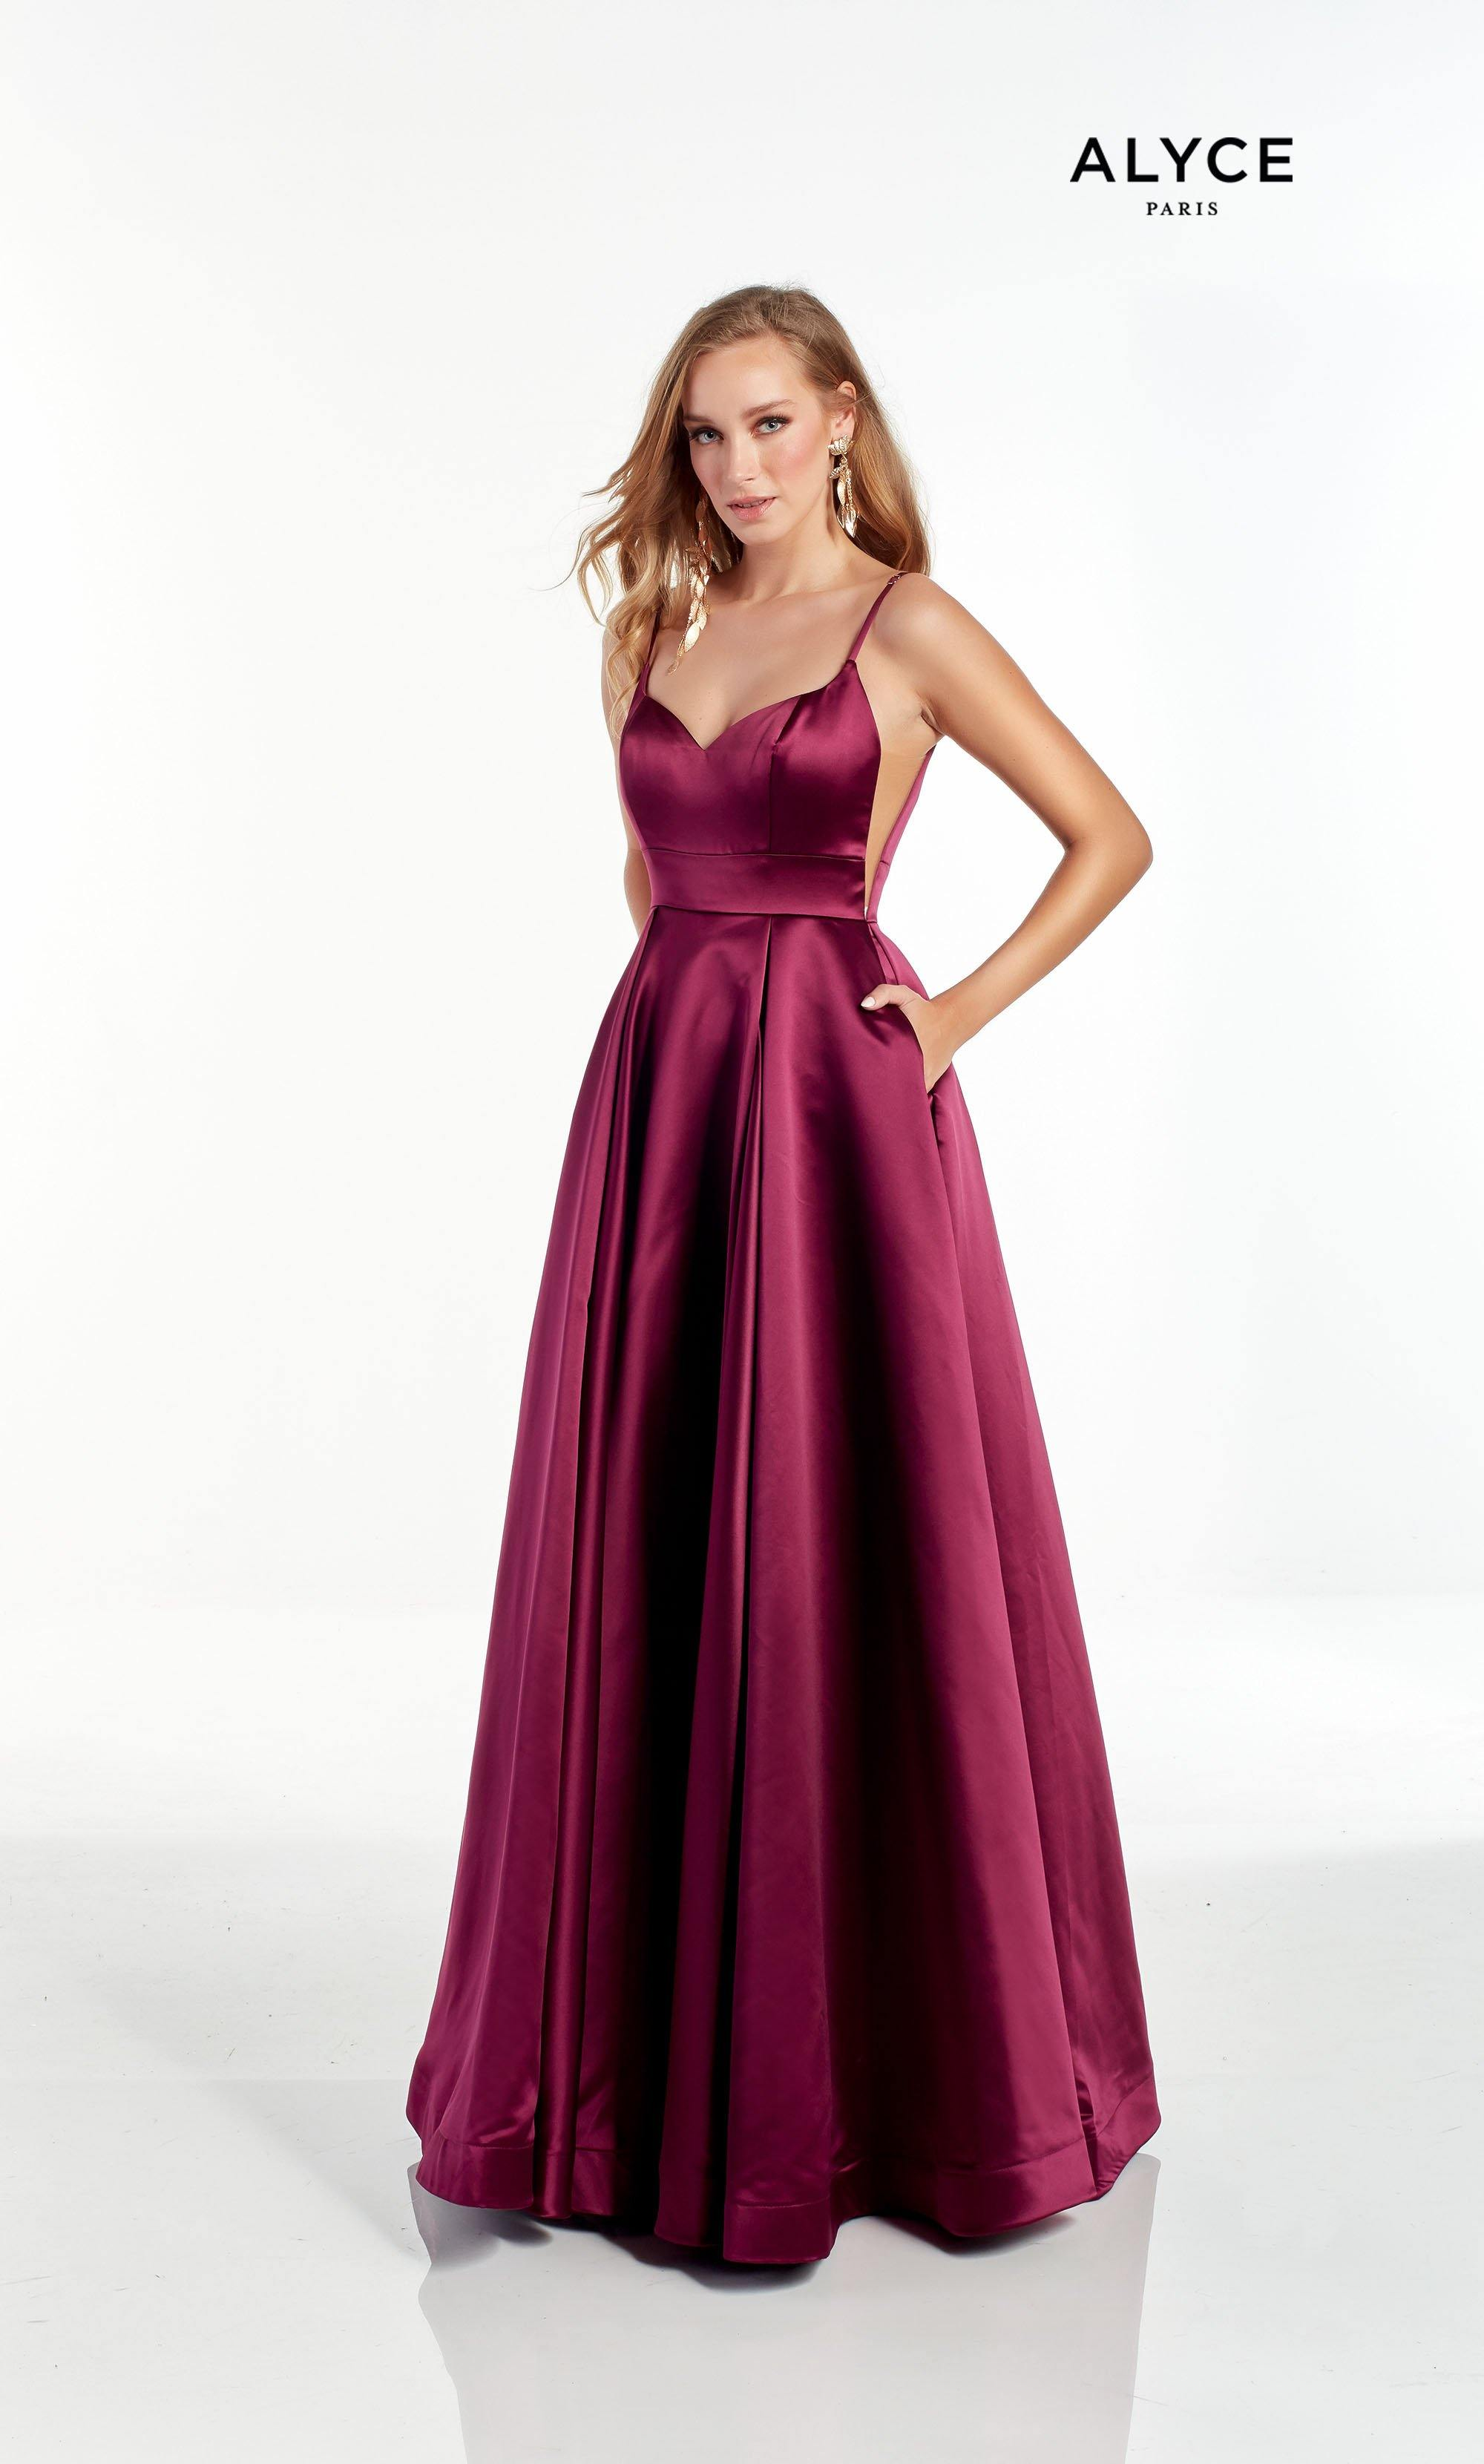 Black Cherry A line Bridesmaid dress with a sweetheart neckline and adjustable straps